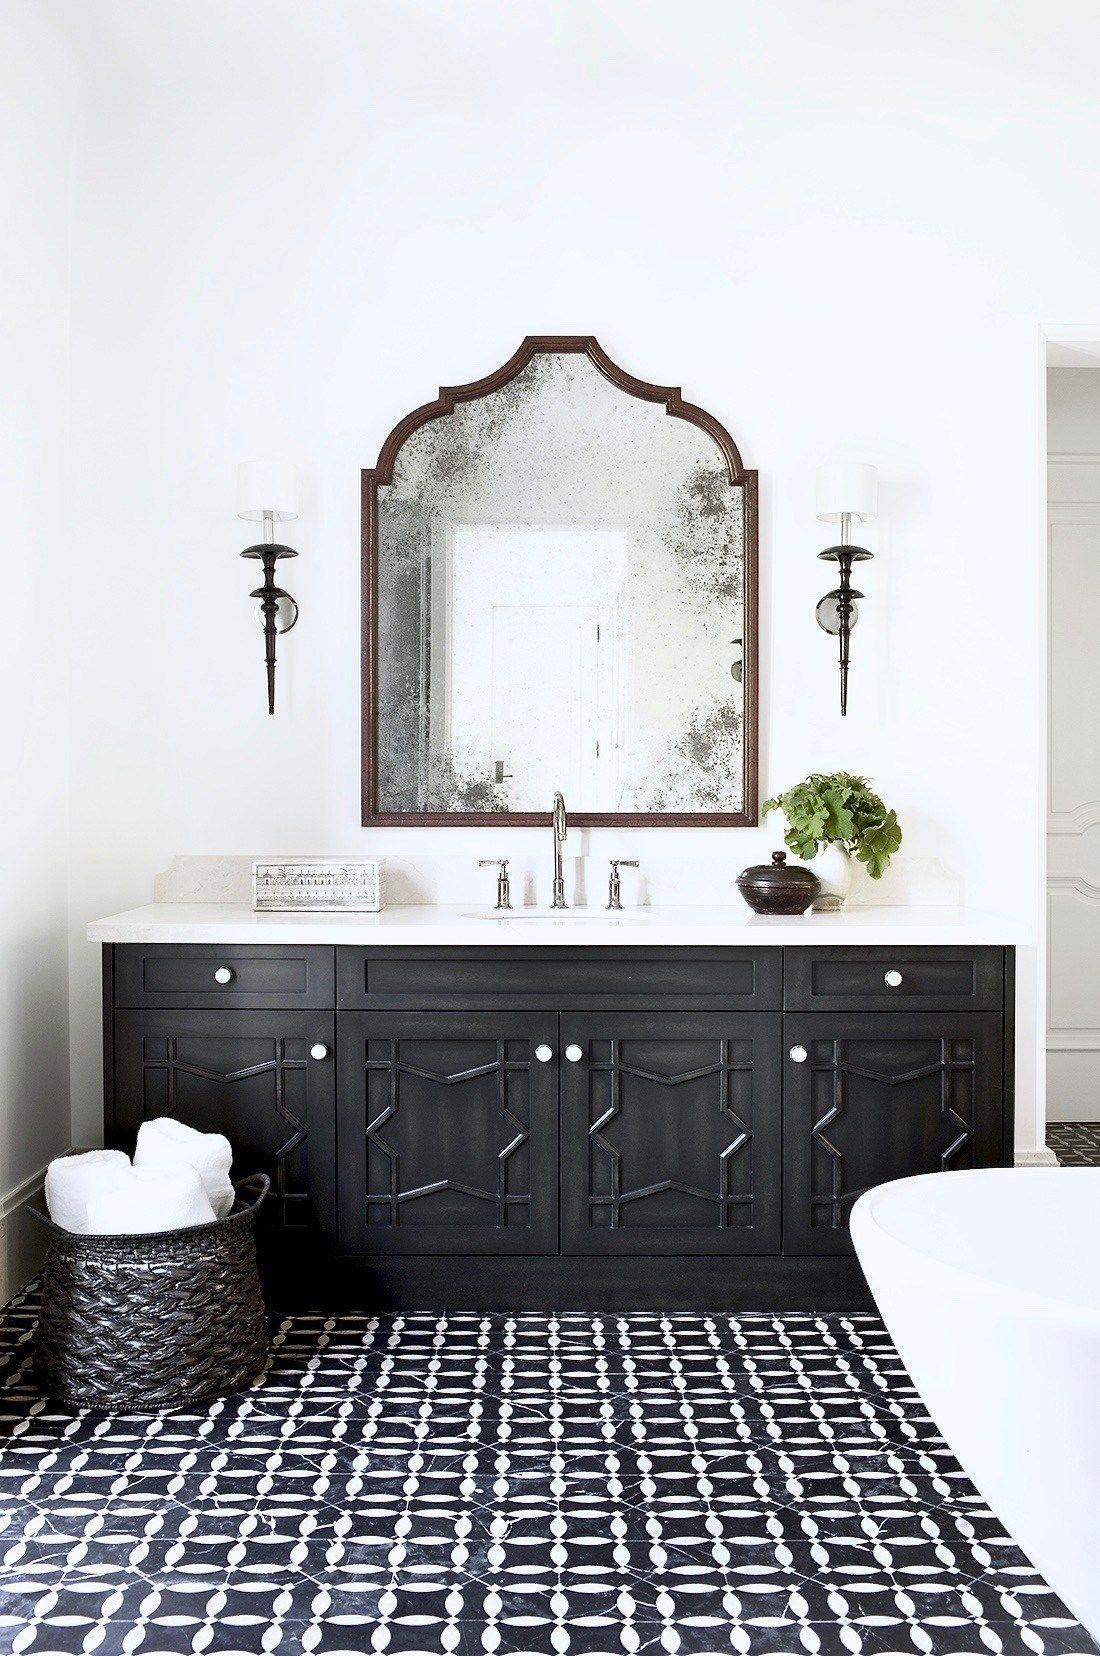 1558953967 131 black and white bathroom designs that show simple can also be interesting - Black and White Bathroom Designs That Show Simple Can Also Be Interesting